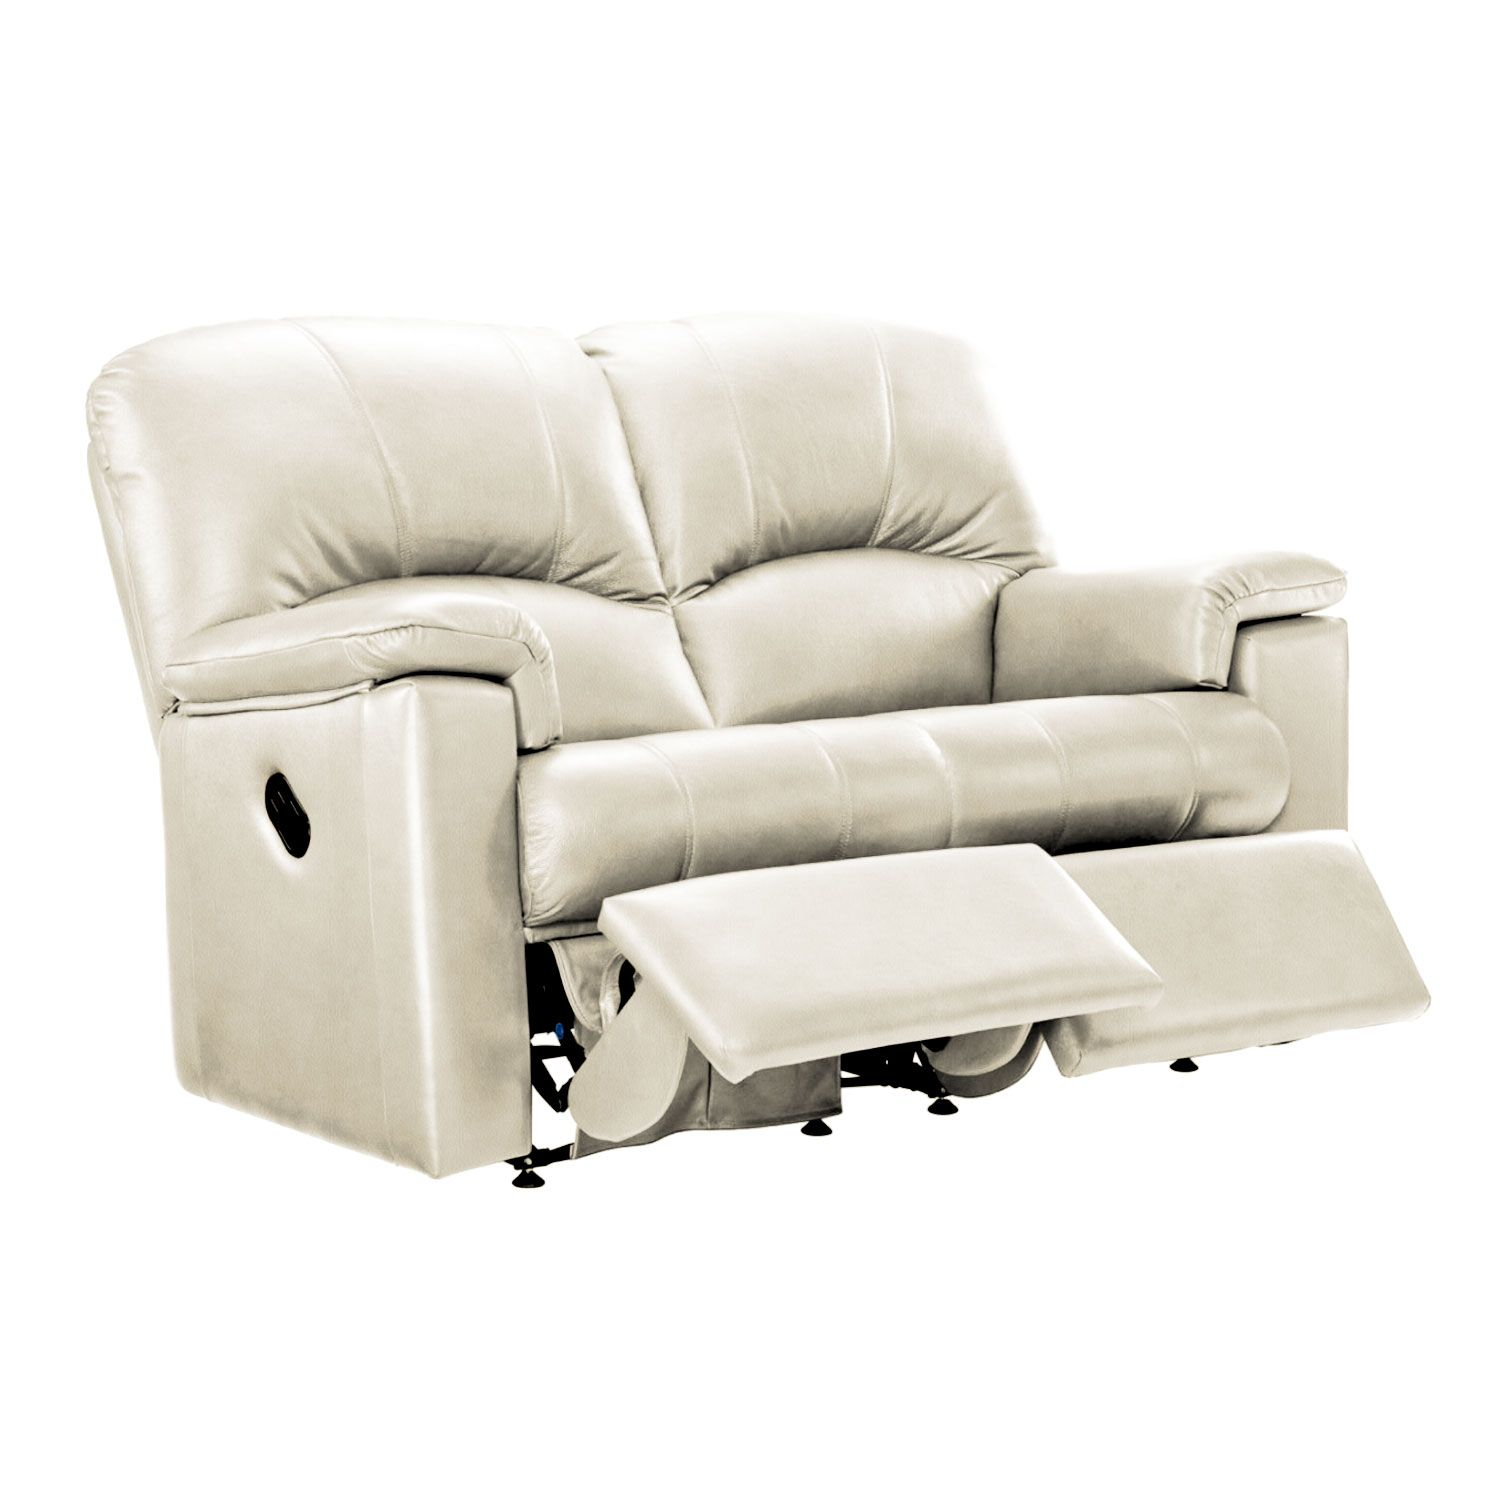 G Plan Chloe 2 Seater Double Power Recliner Leather Sofa